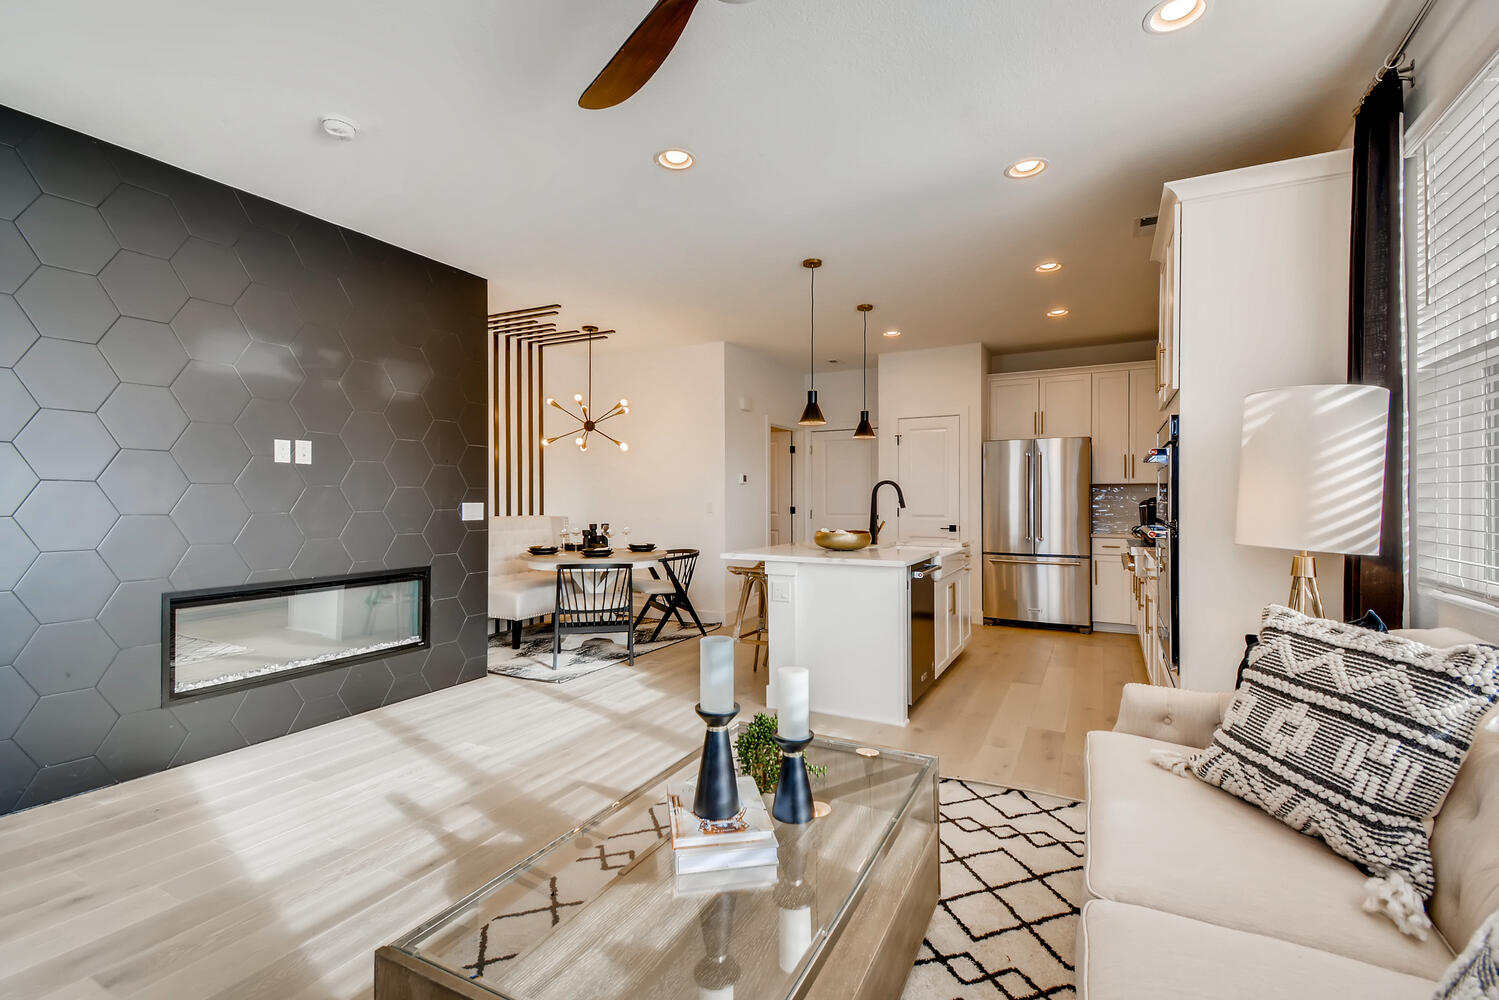 Open concept floor plan of modern townhome by residential architect in colorado featuring linear fireplace and accent wall